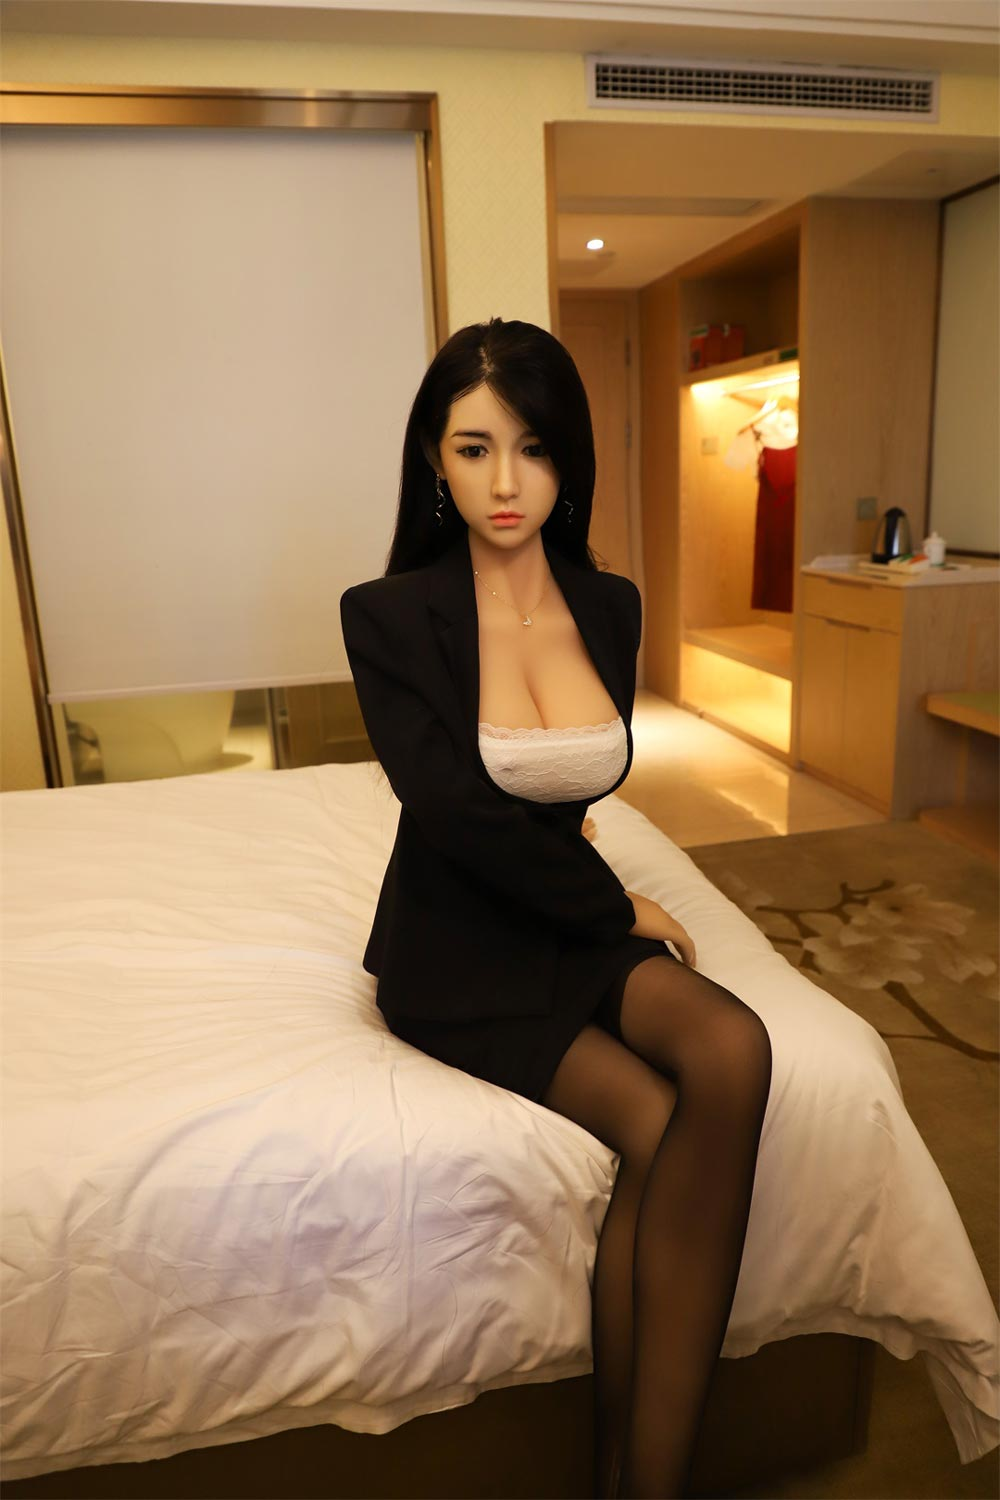 Silicone sex doll with hand on thigh